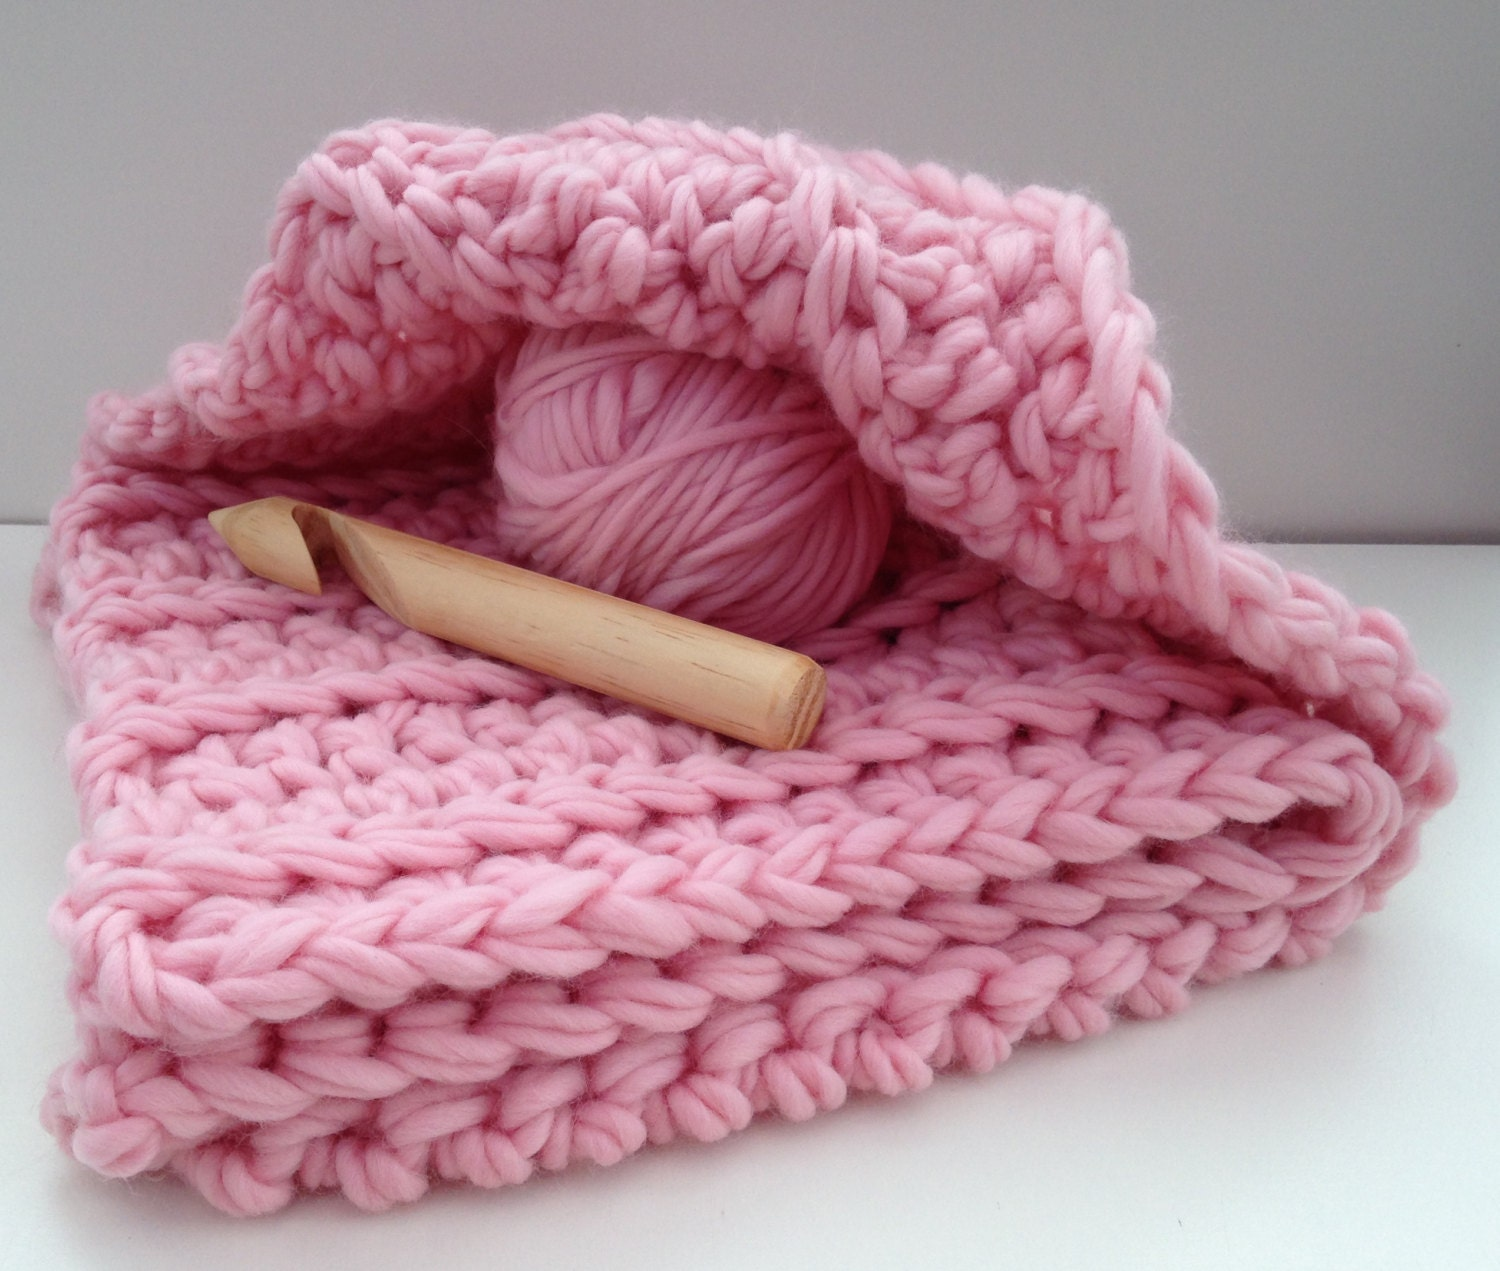 Blanket crochet kit baby blanket. DIY Learn to crochet super